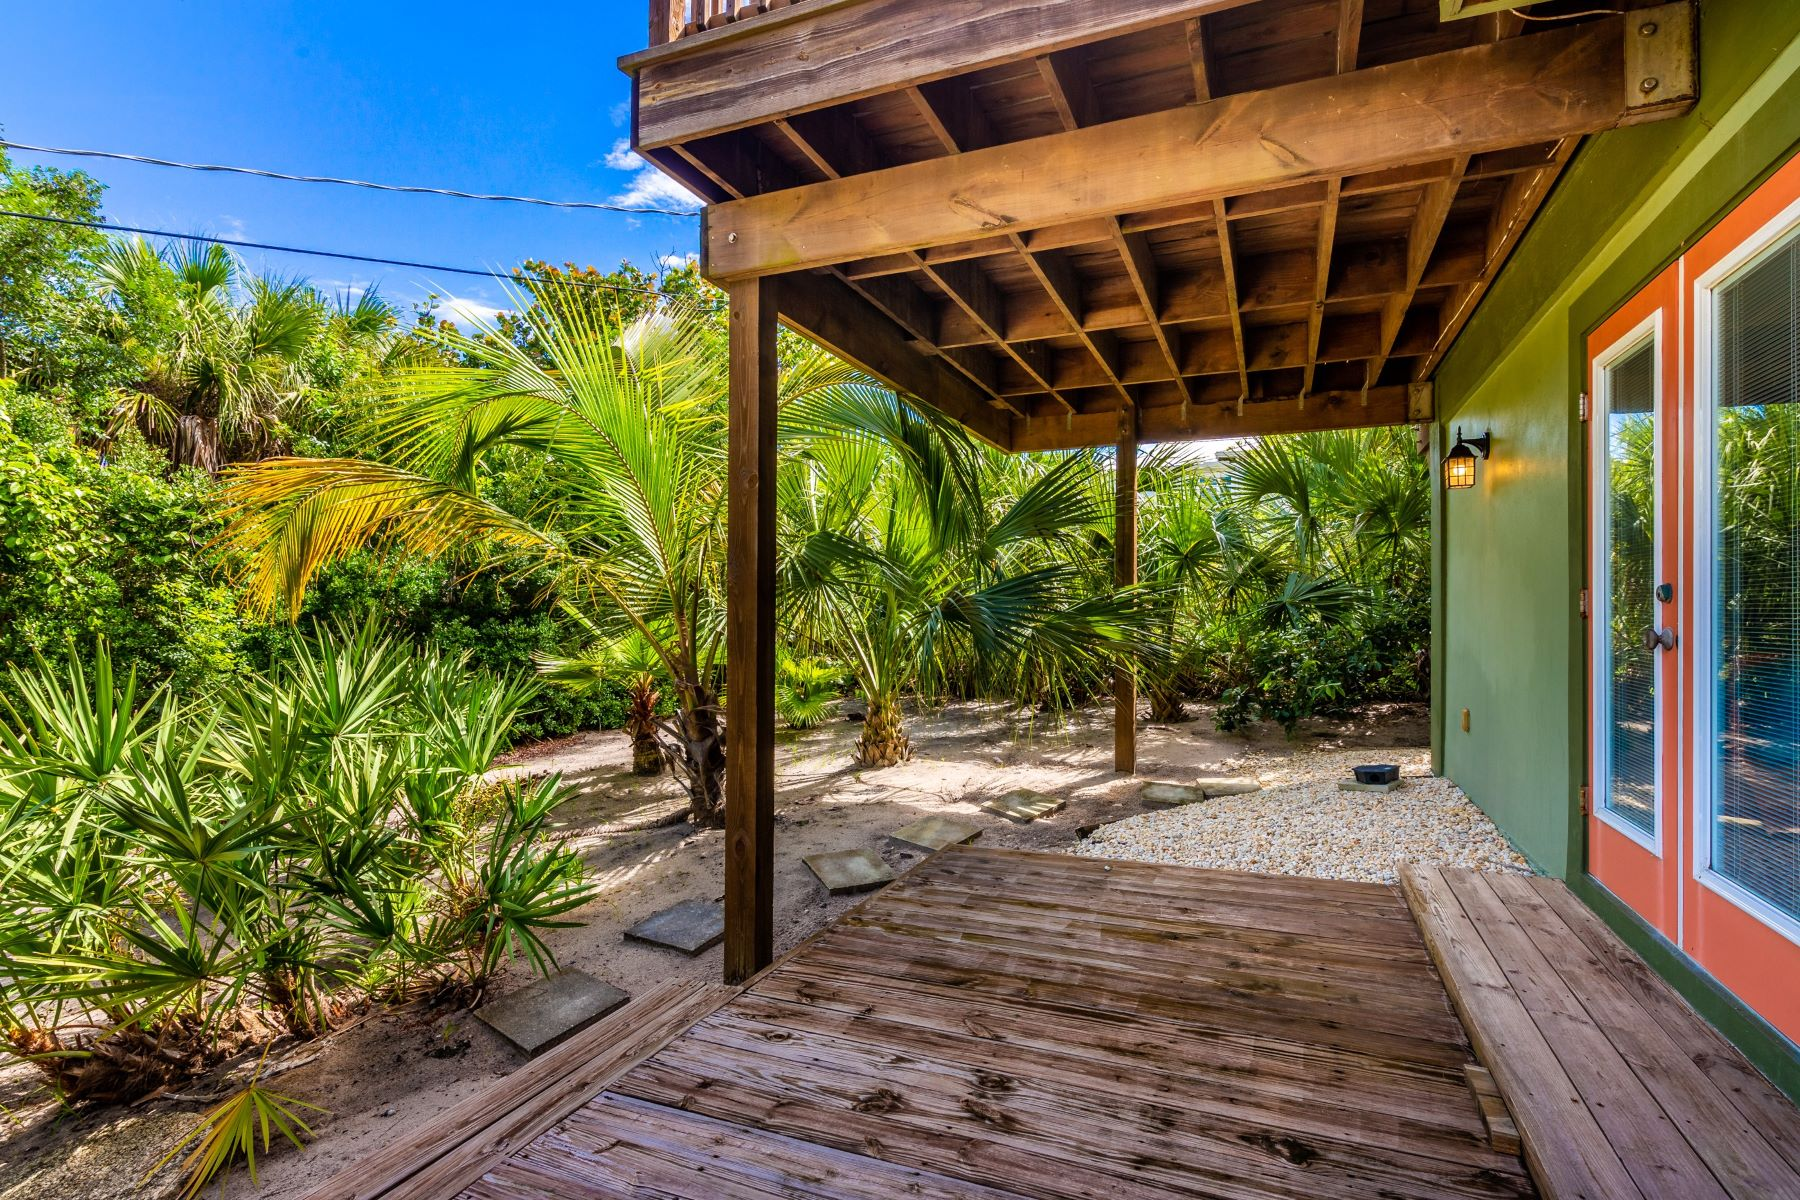 Additional photo for property listing at Tropical Home in Tranquil & Quiet Setting 1830 E Cayman Road Vero Beach, Florida 32963 United States